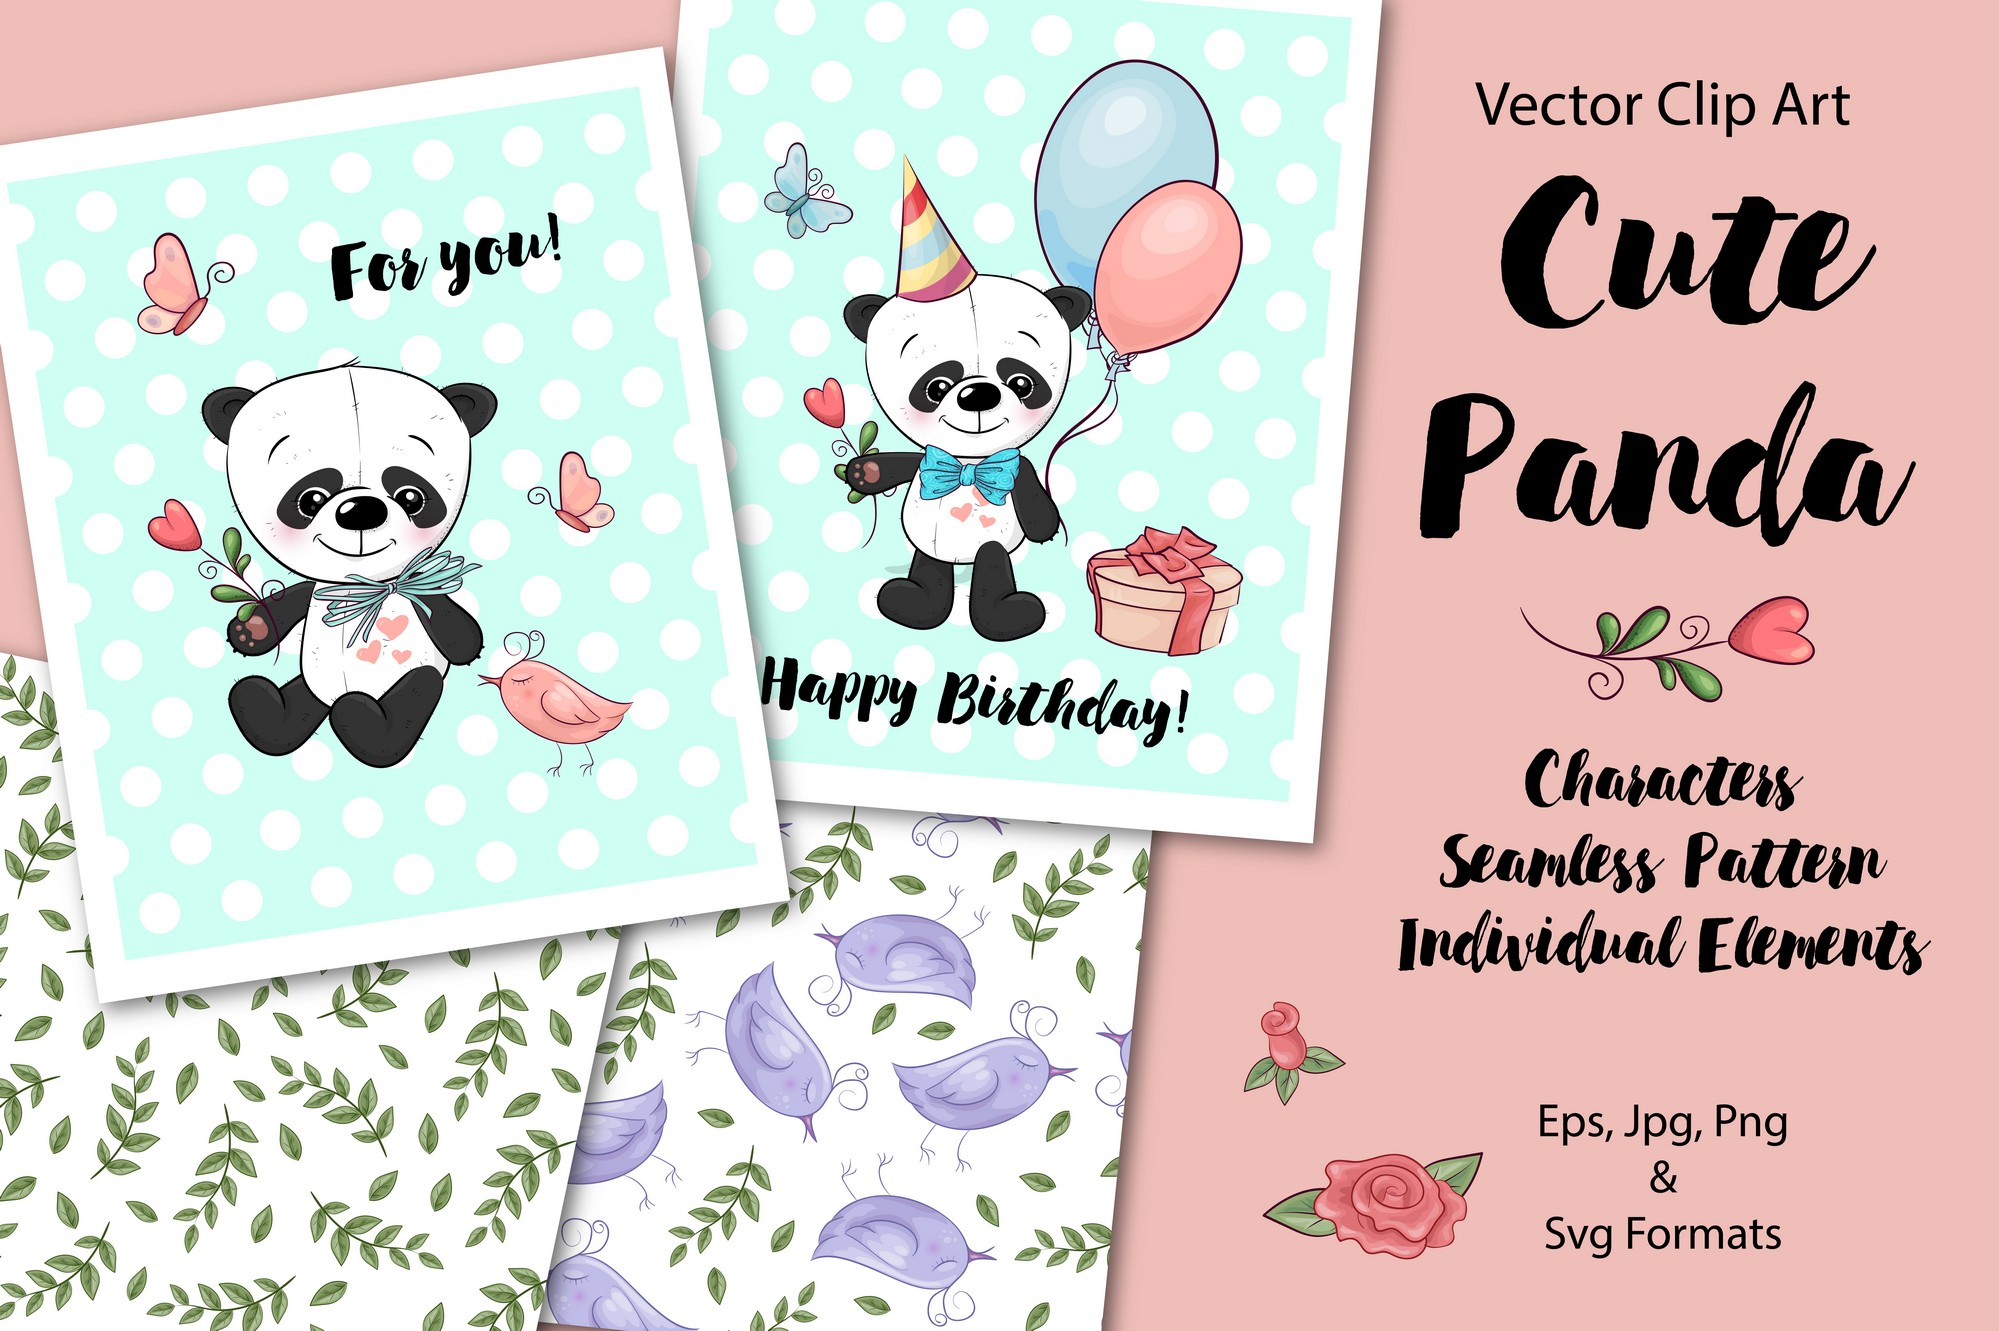 Download Free Cute Panda Vector Clip Art Graphic By Nicjulia Creative Fabrica for Cricut Explore, Silhouette and other cutting machines.